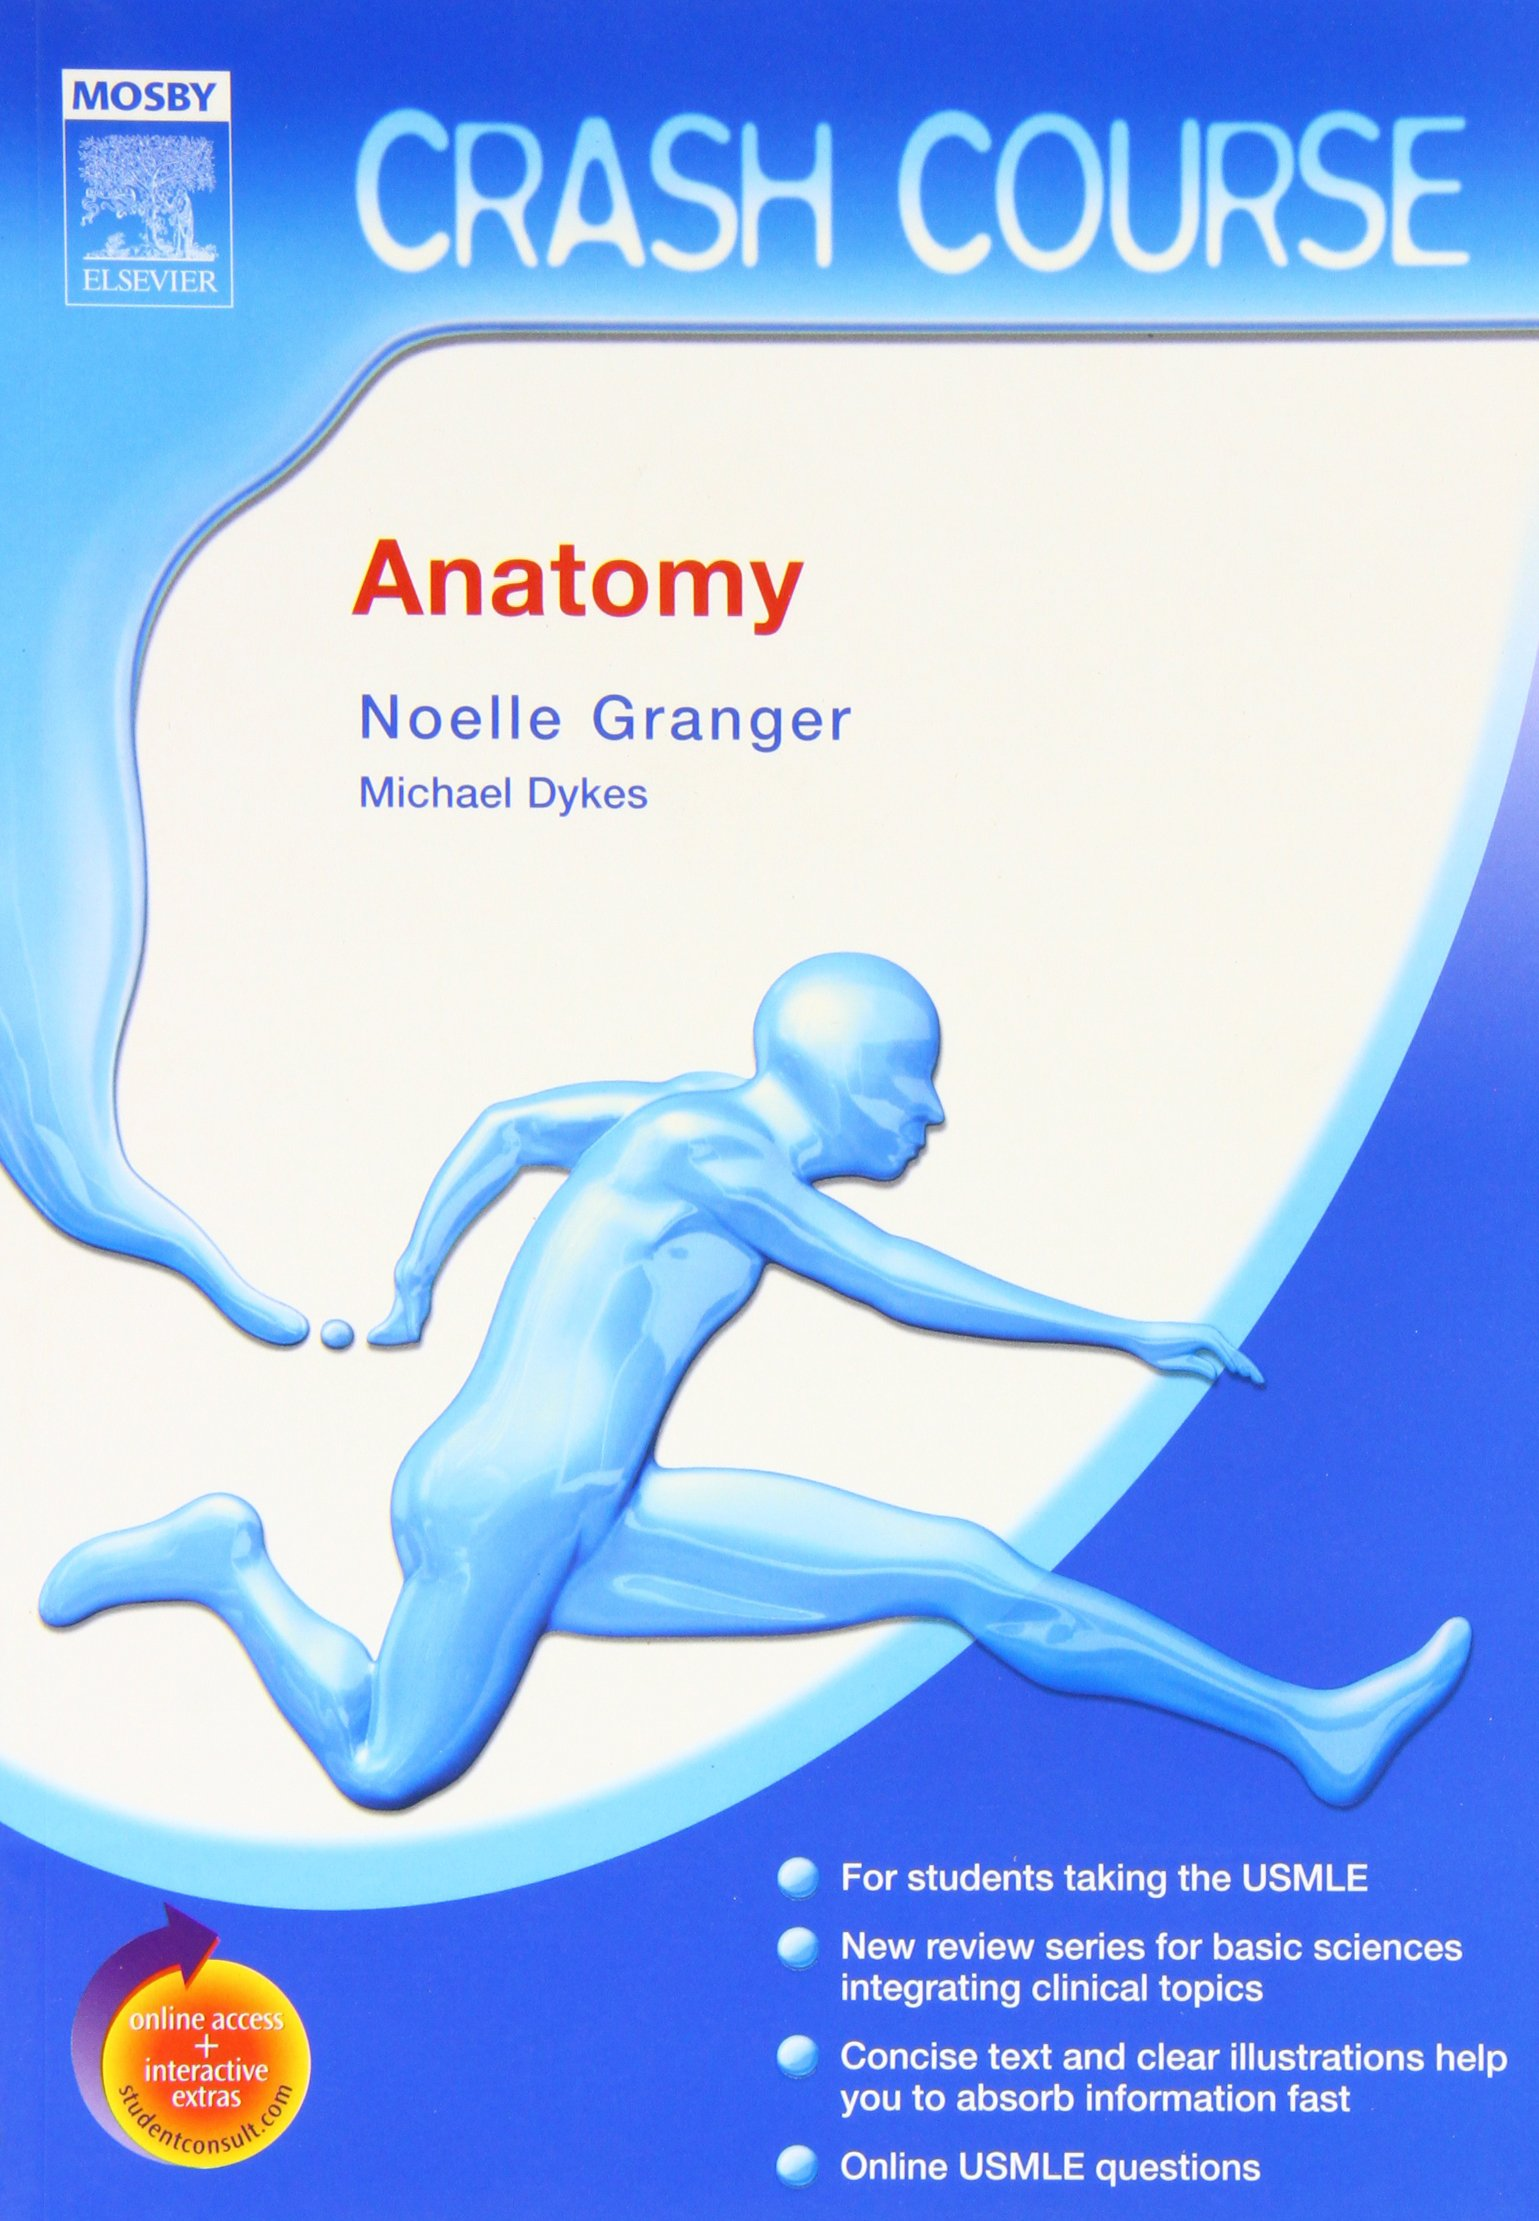 Crash Course (US): Anatomy, 1e: Amazon.co.uk: Noelle Granger PhD ...